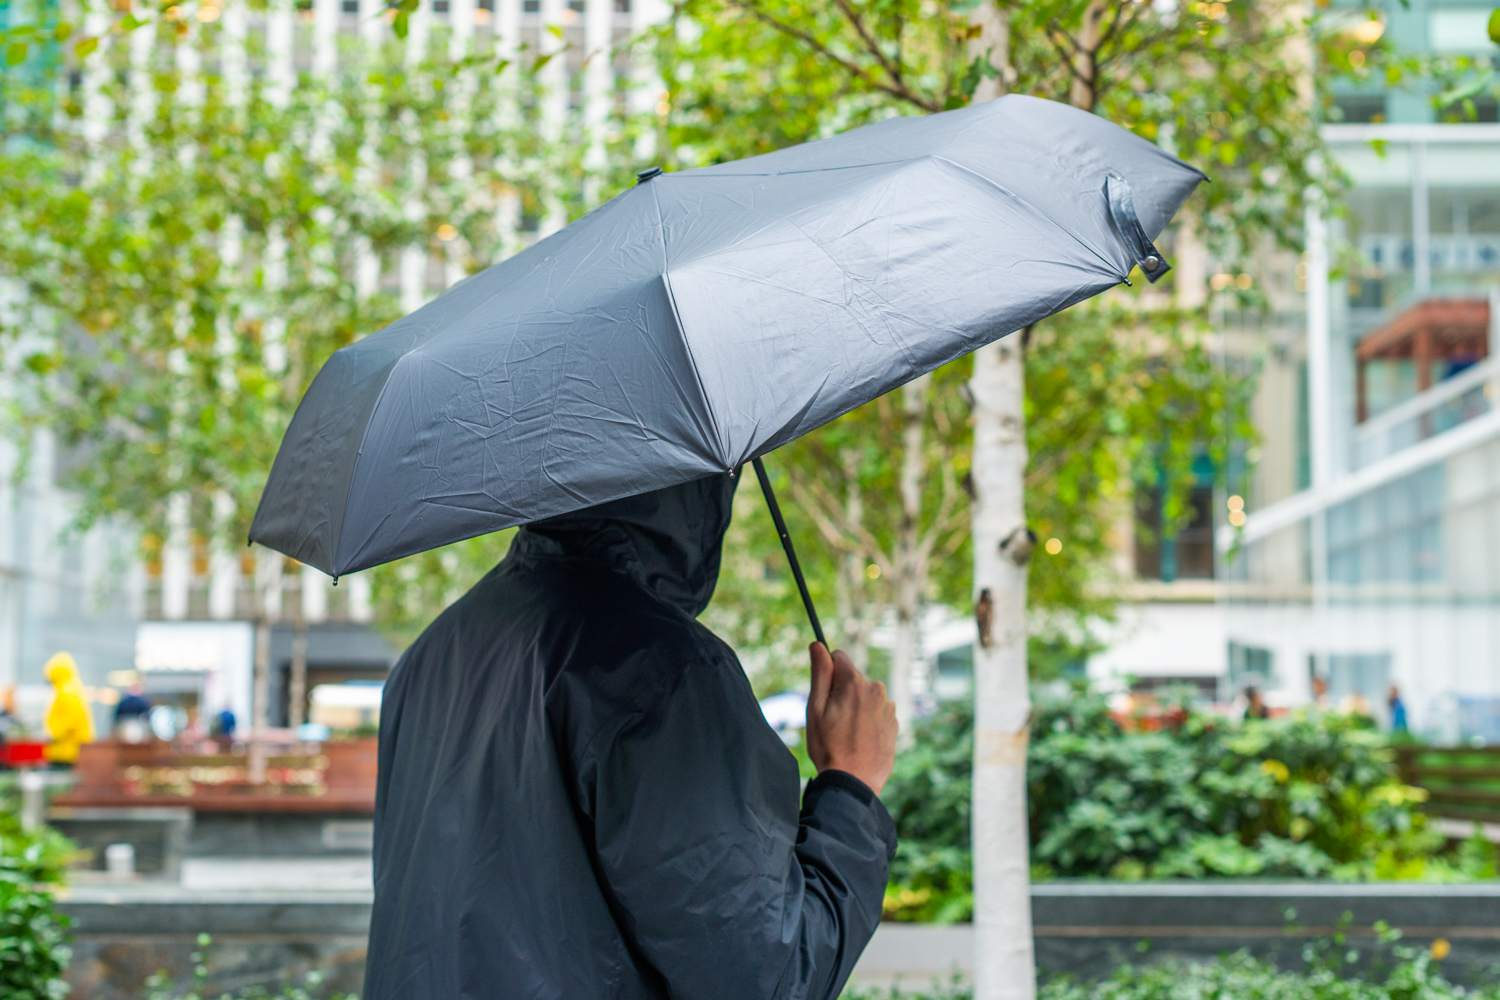 e3e60b4dd6eb The 7 Best UV Umbrellas of 2019